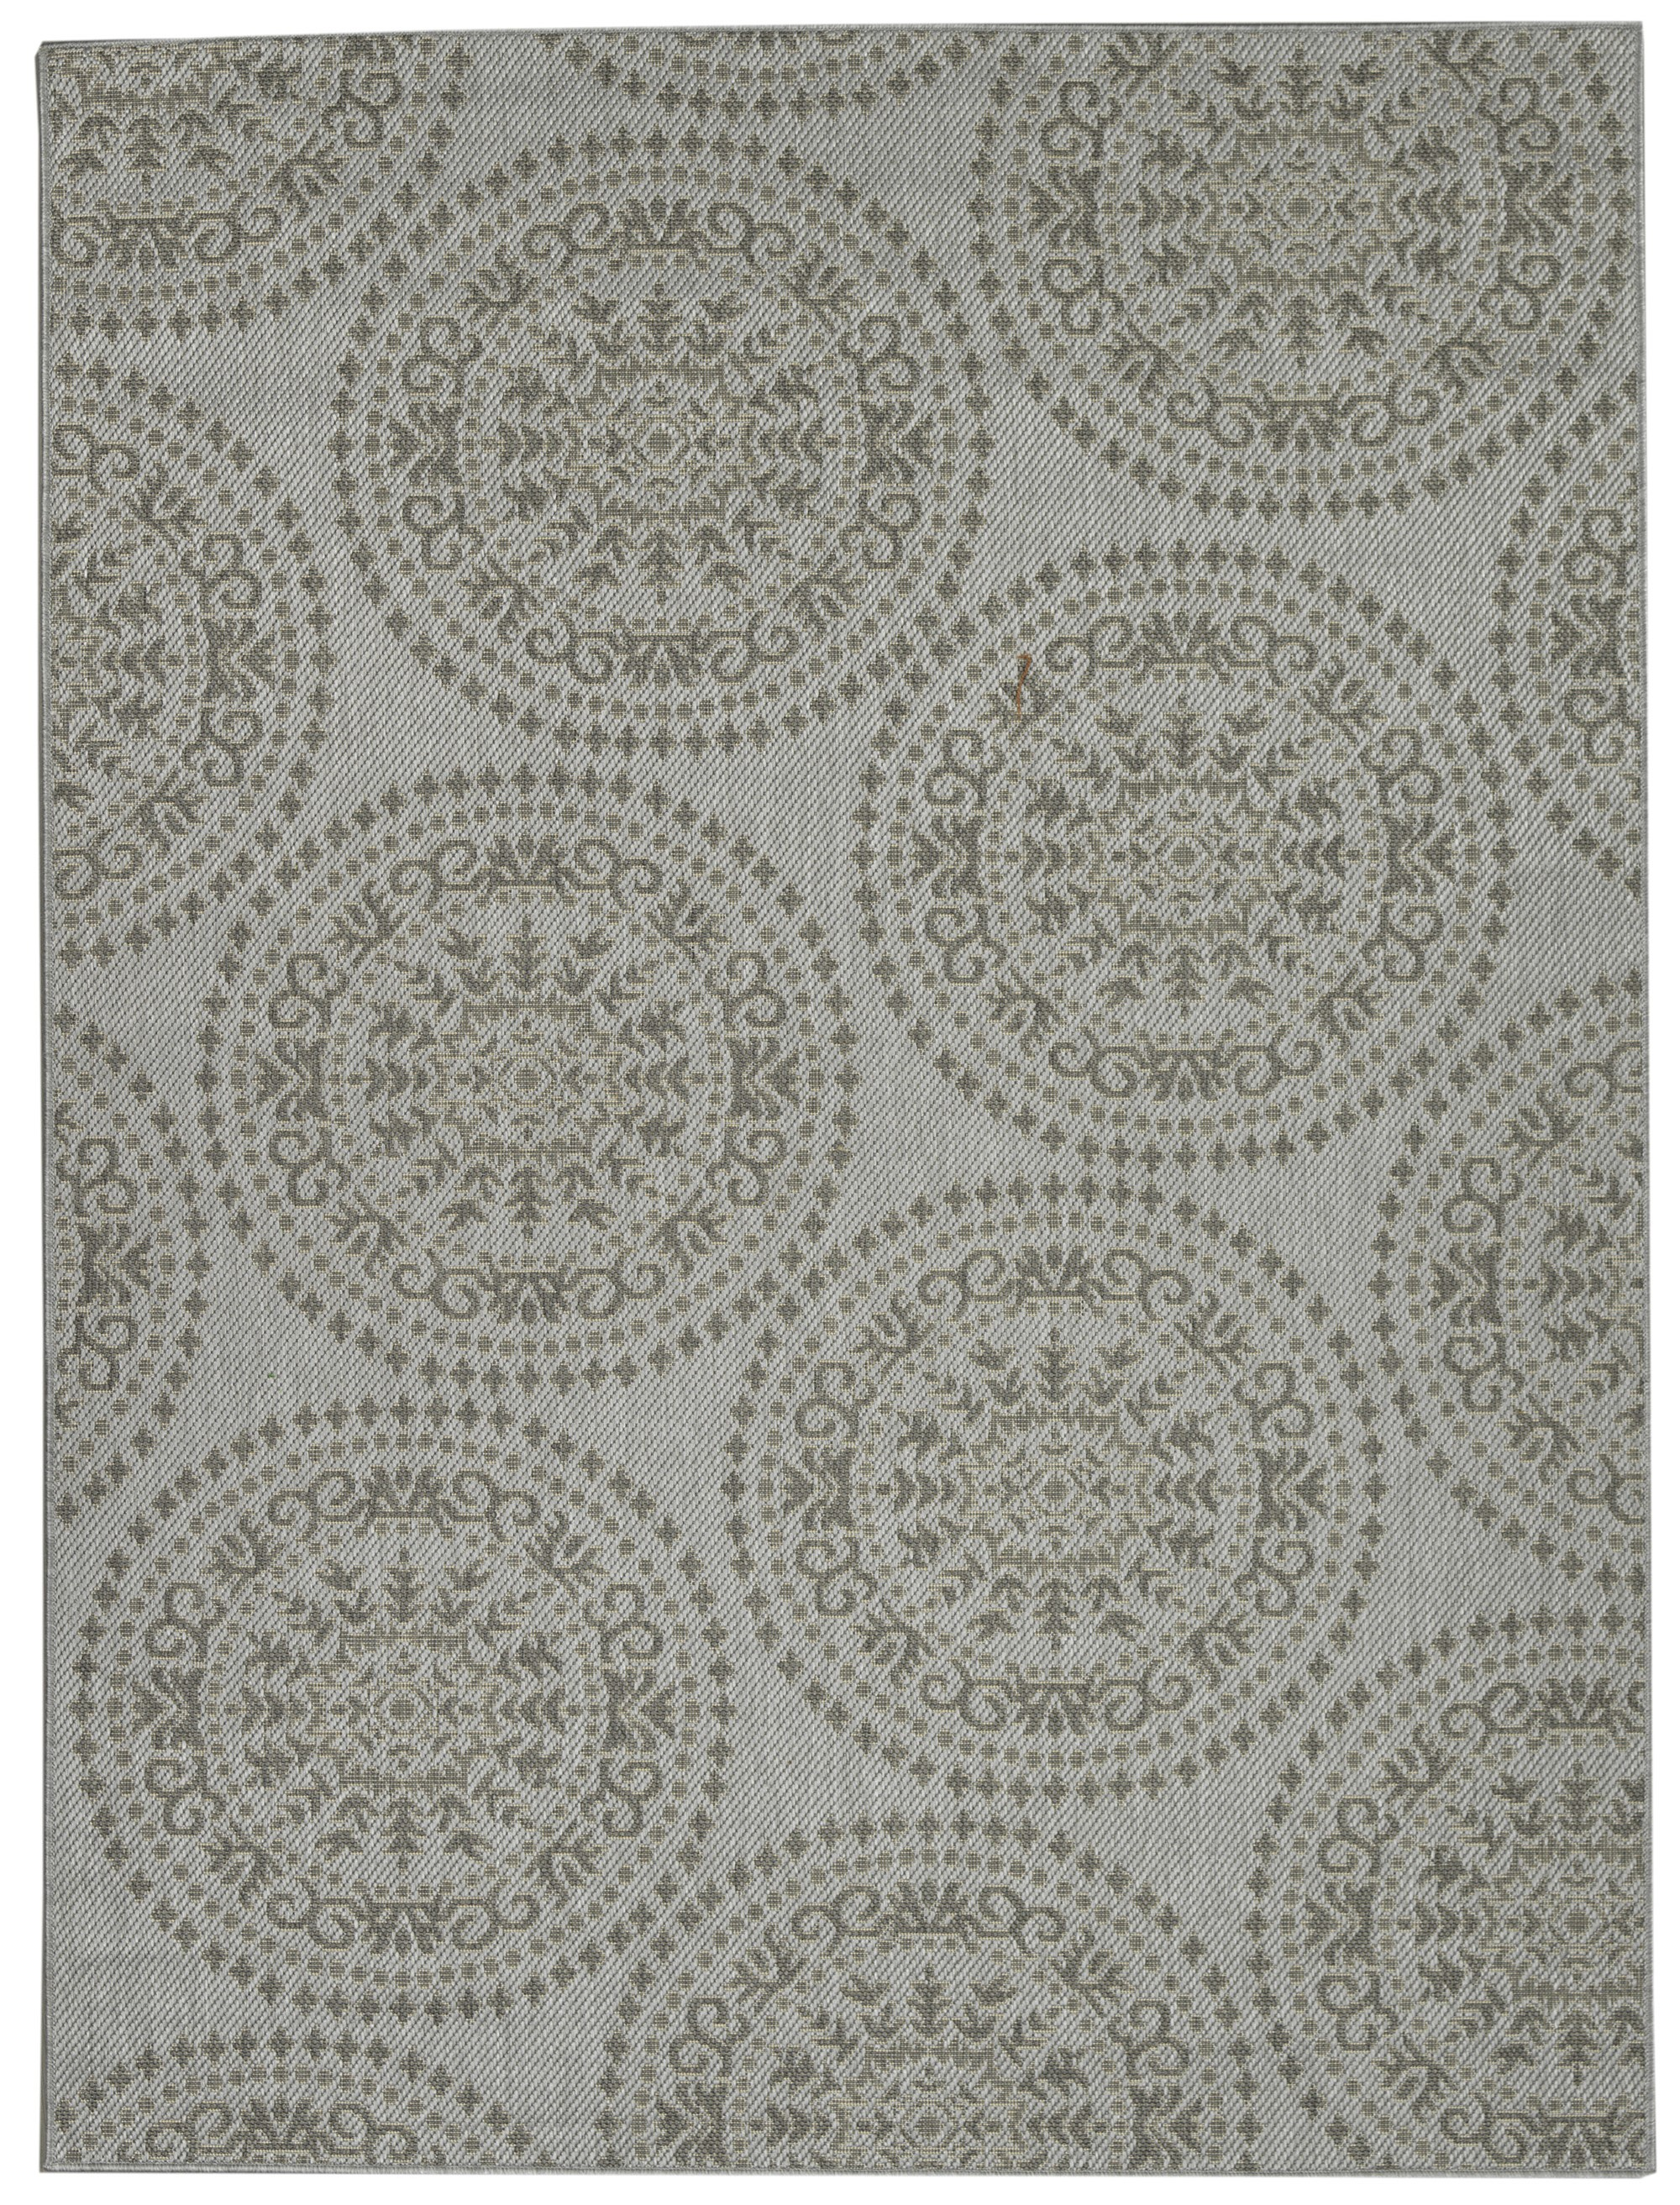 Ottomanson Jardin Collection Damask Medallions Indoor/Outdoor Jute Backing  Area Or Runner Rug Variations,